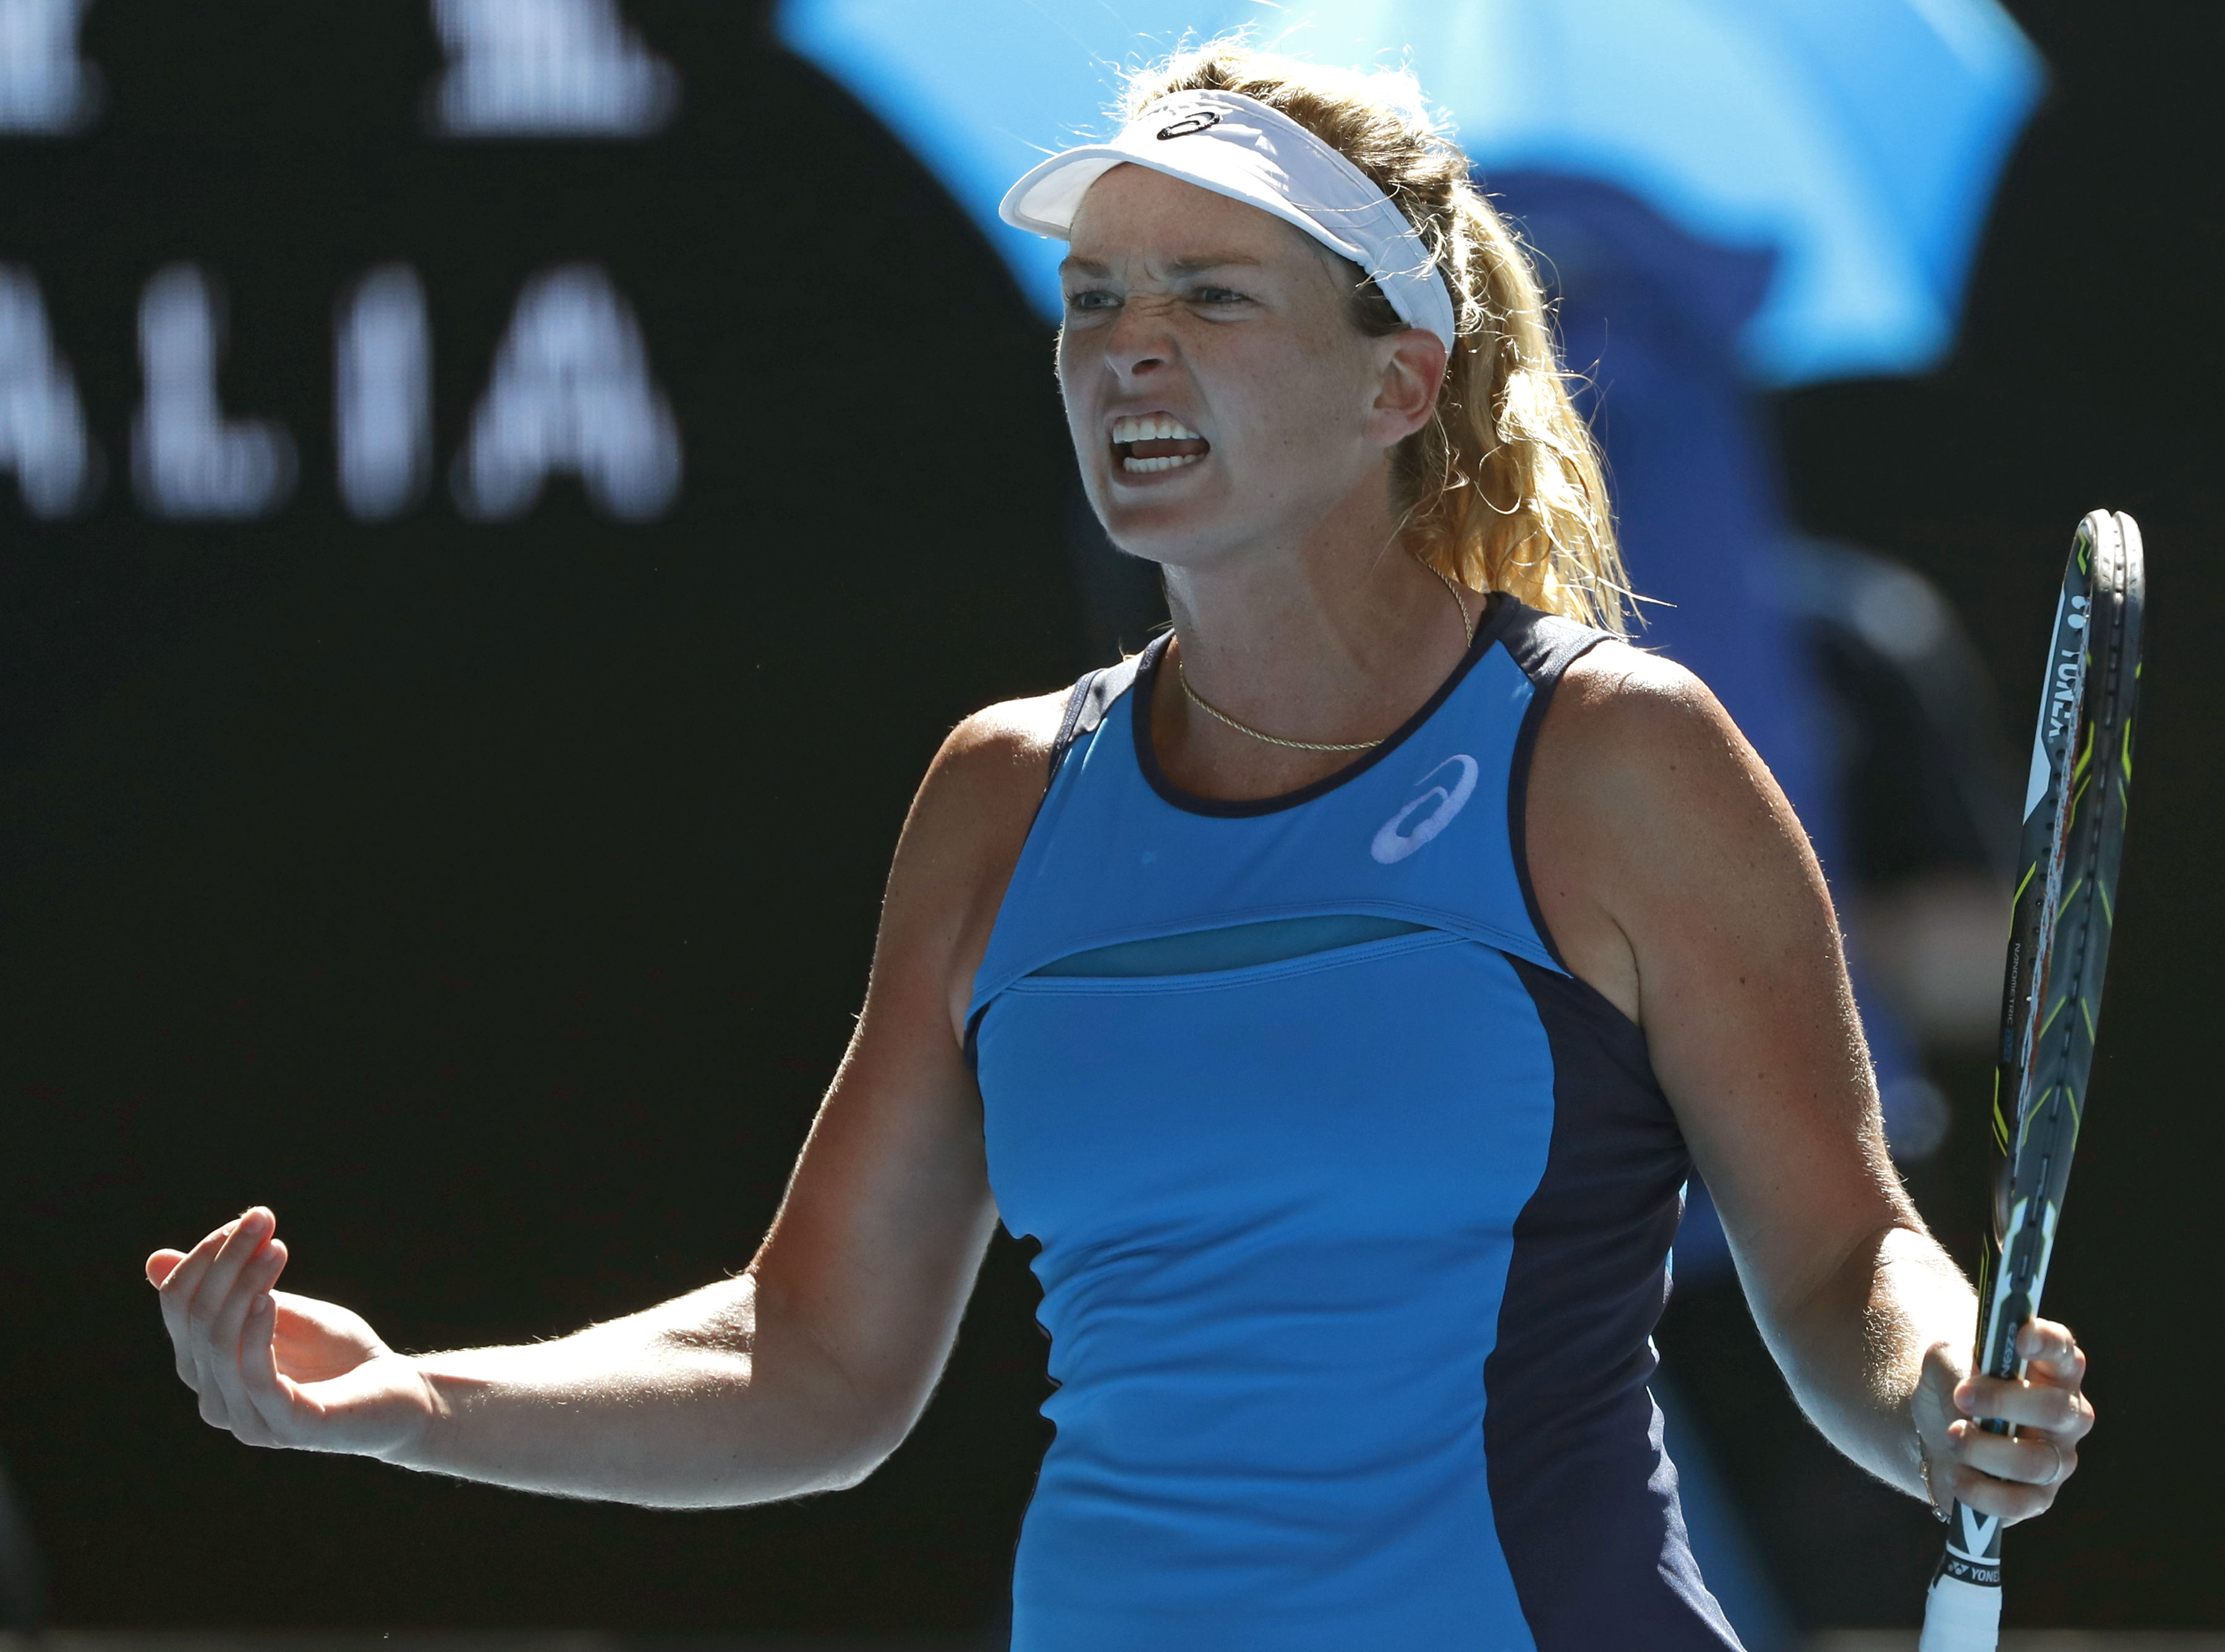 United States' Coco Vandeweghe celebrates a point win over compatriot Venus Williams during their semifinal at the Australian Open tennis championships in Melbourne, Australia, Thursday, Jan. 26, 2017. (AP Photo/Dita Alangkara)